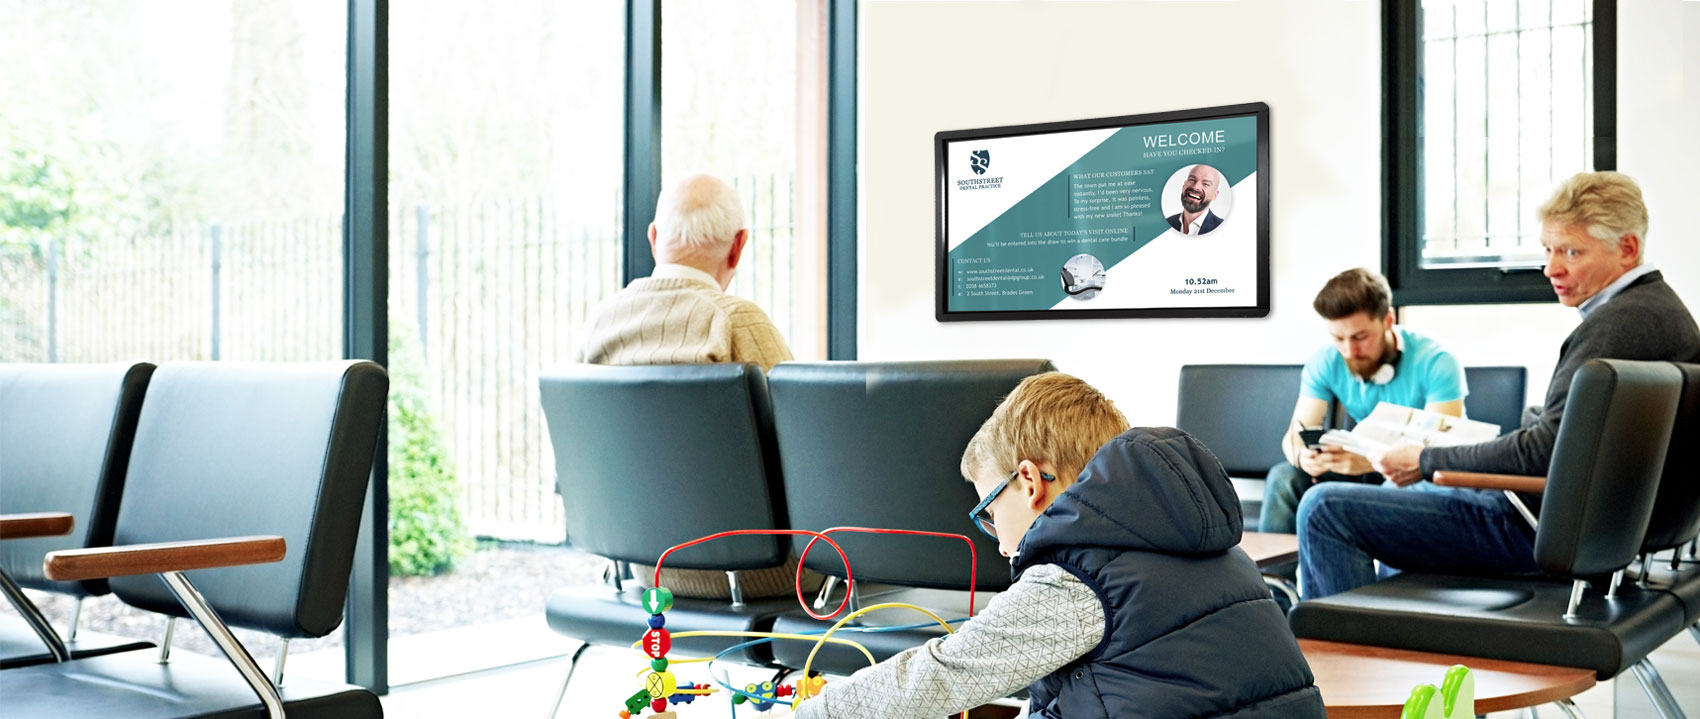 Improving the Health Sector Patient Experience with Digital Signage